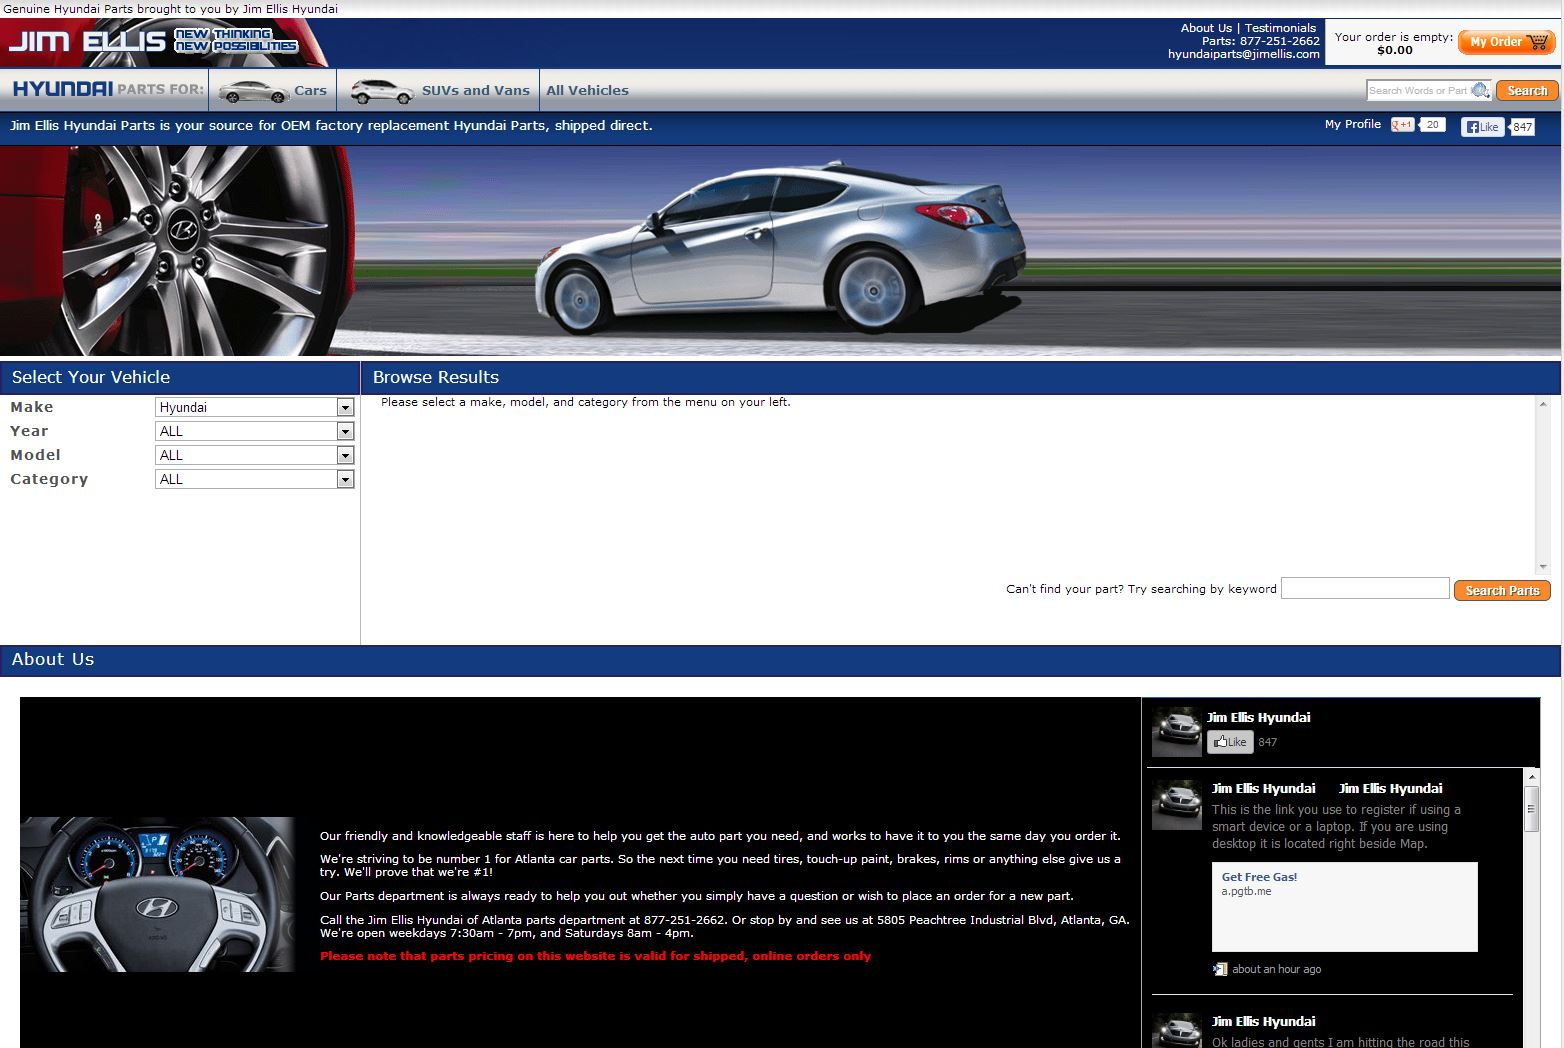 Beautiful Jim Ellis Hyundai Parts Reviews | 93 Reviews Of Jimellishyundaiparts.com |  ResellerRatings